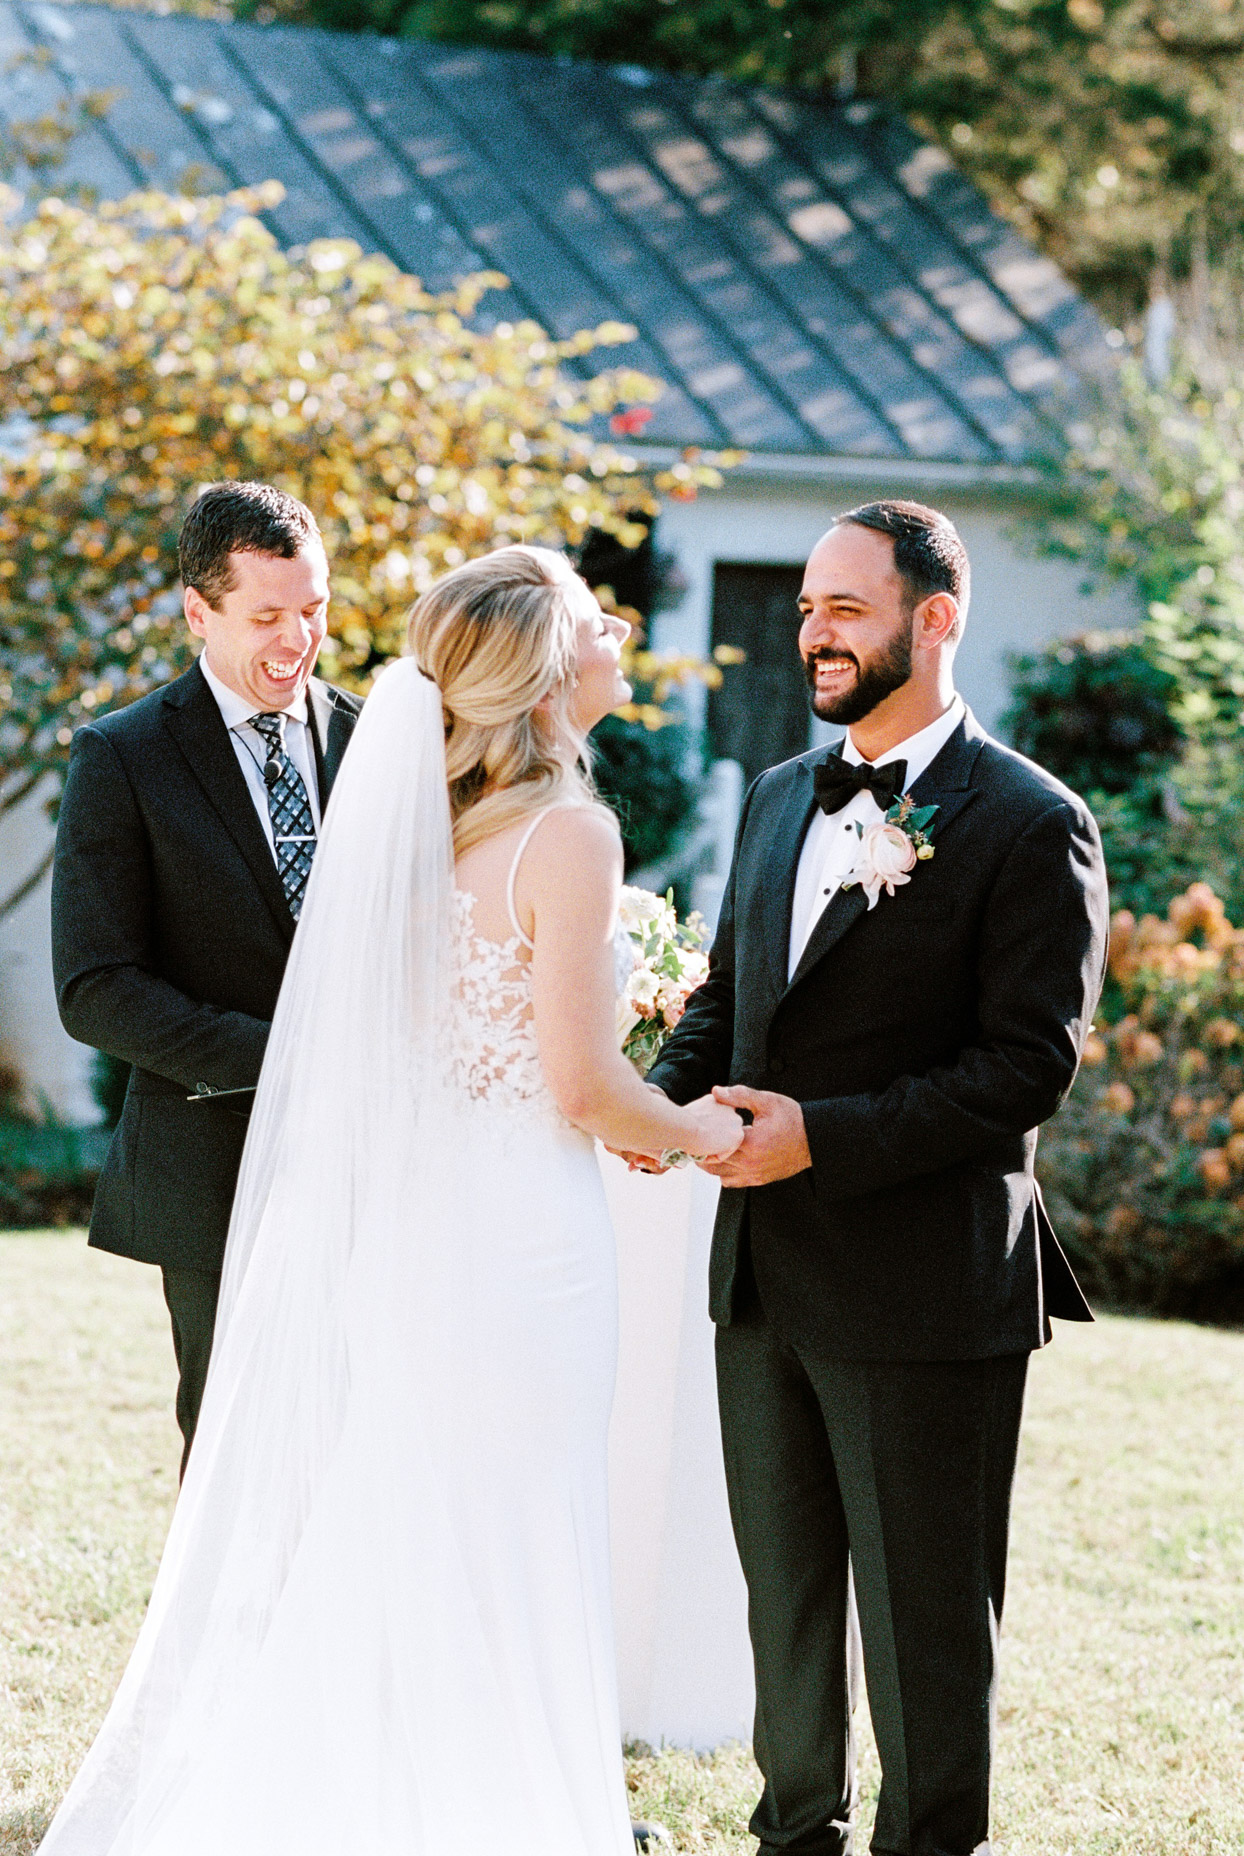 couple smiling at each other during ceremony